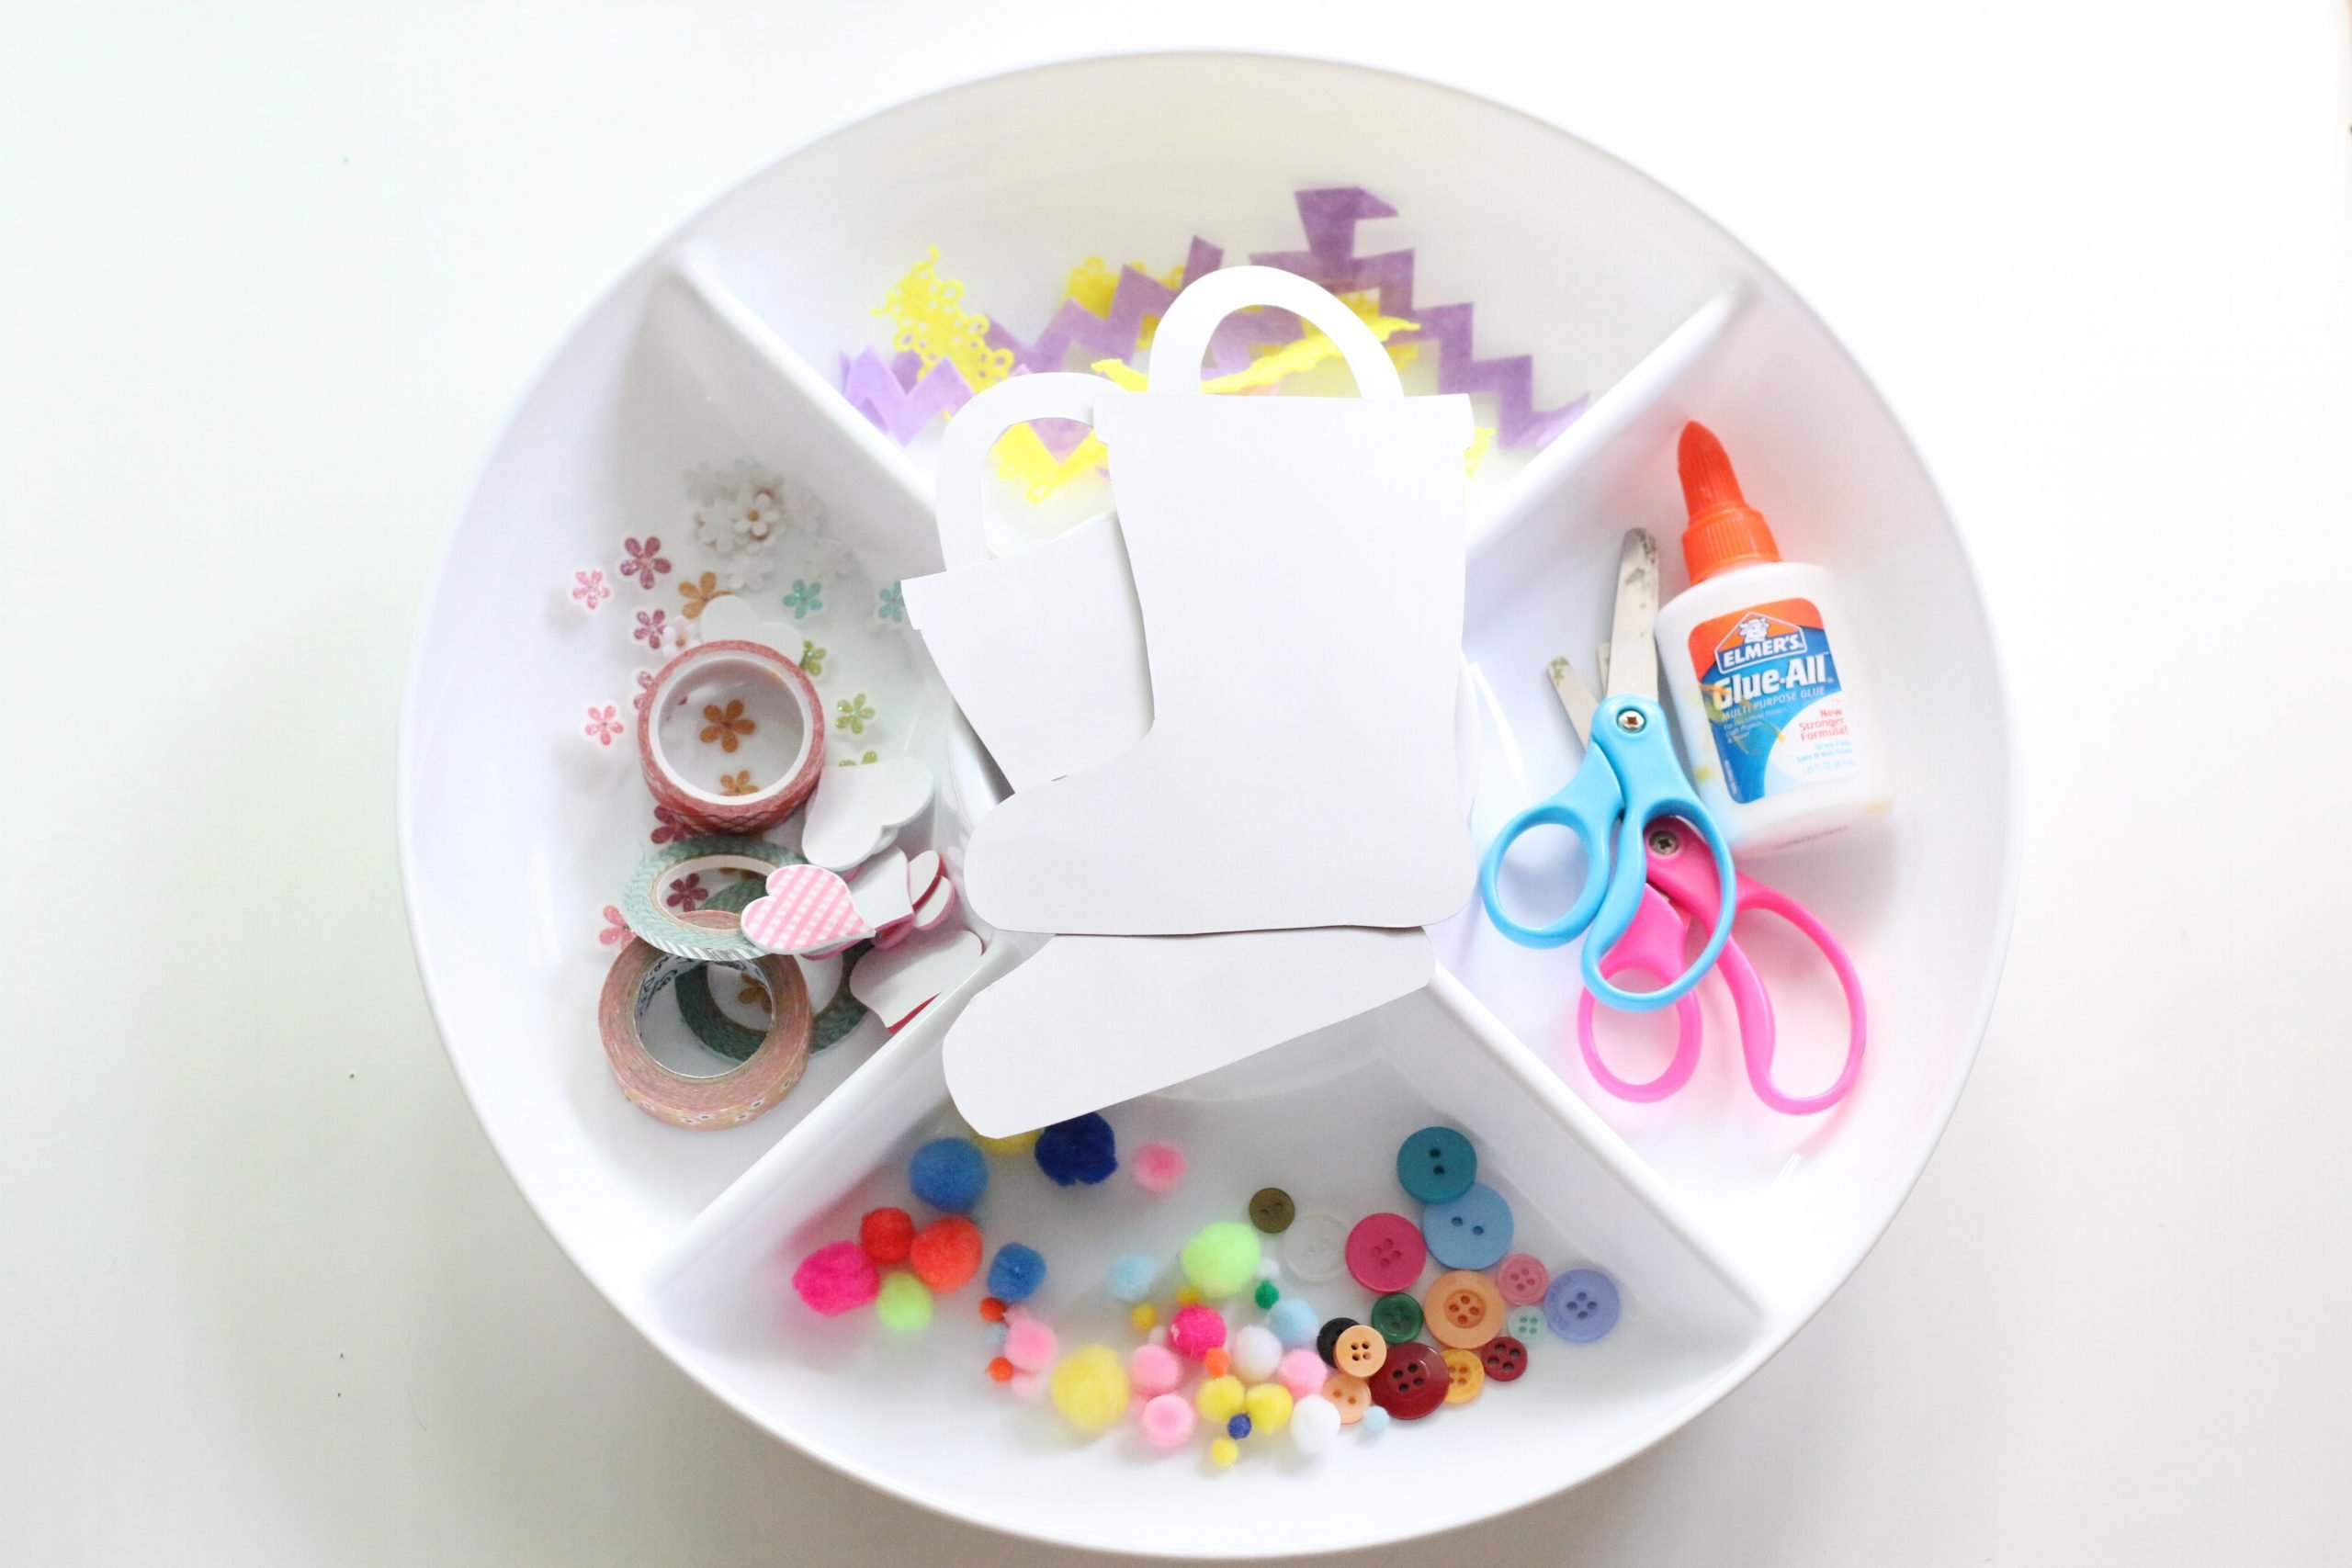 Decorate the Rain Boots Tray